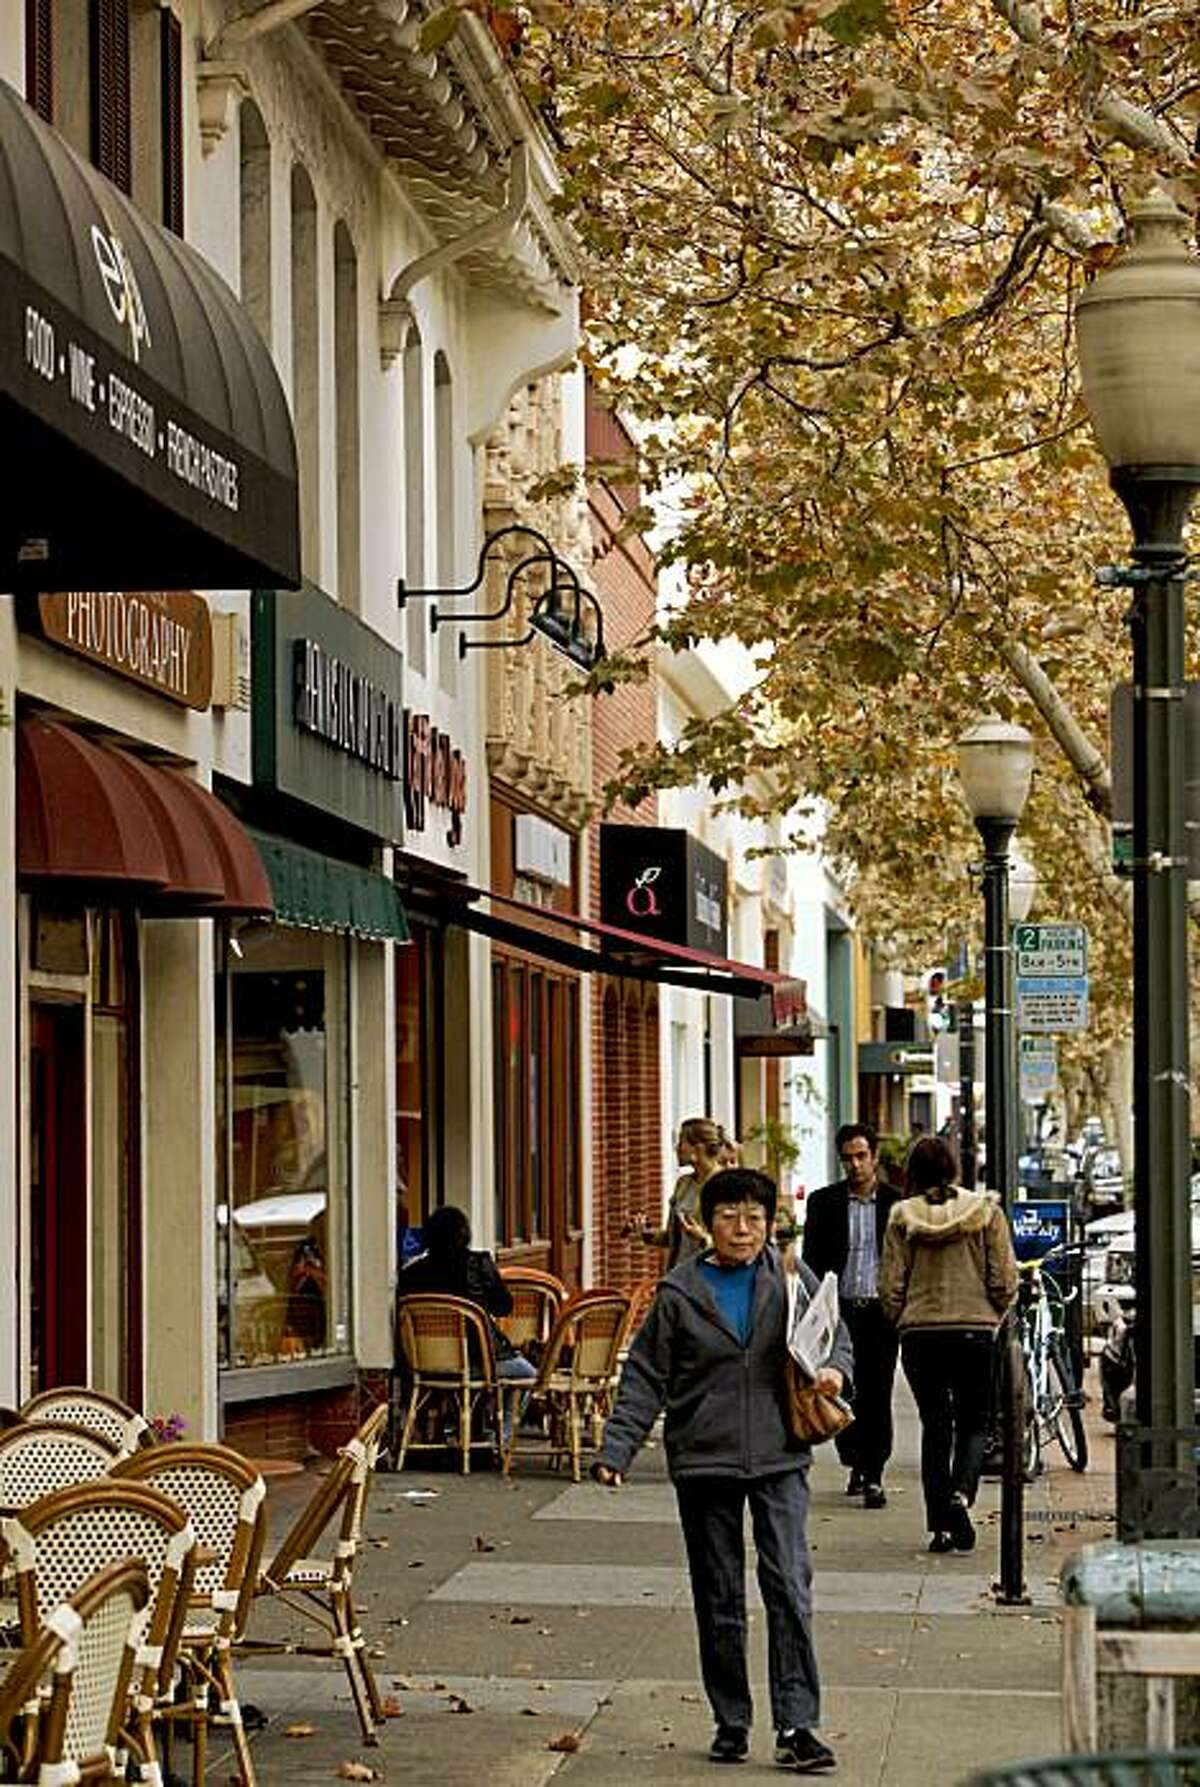 Tree-lined University Avenue's business district in Palo Alto is filled with small shops and sidewalk cafes.